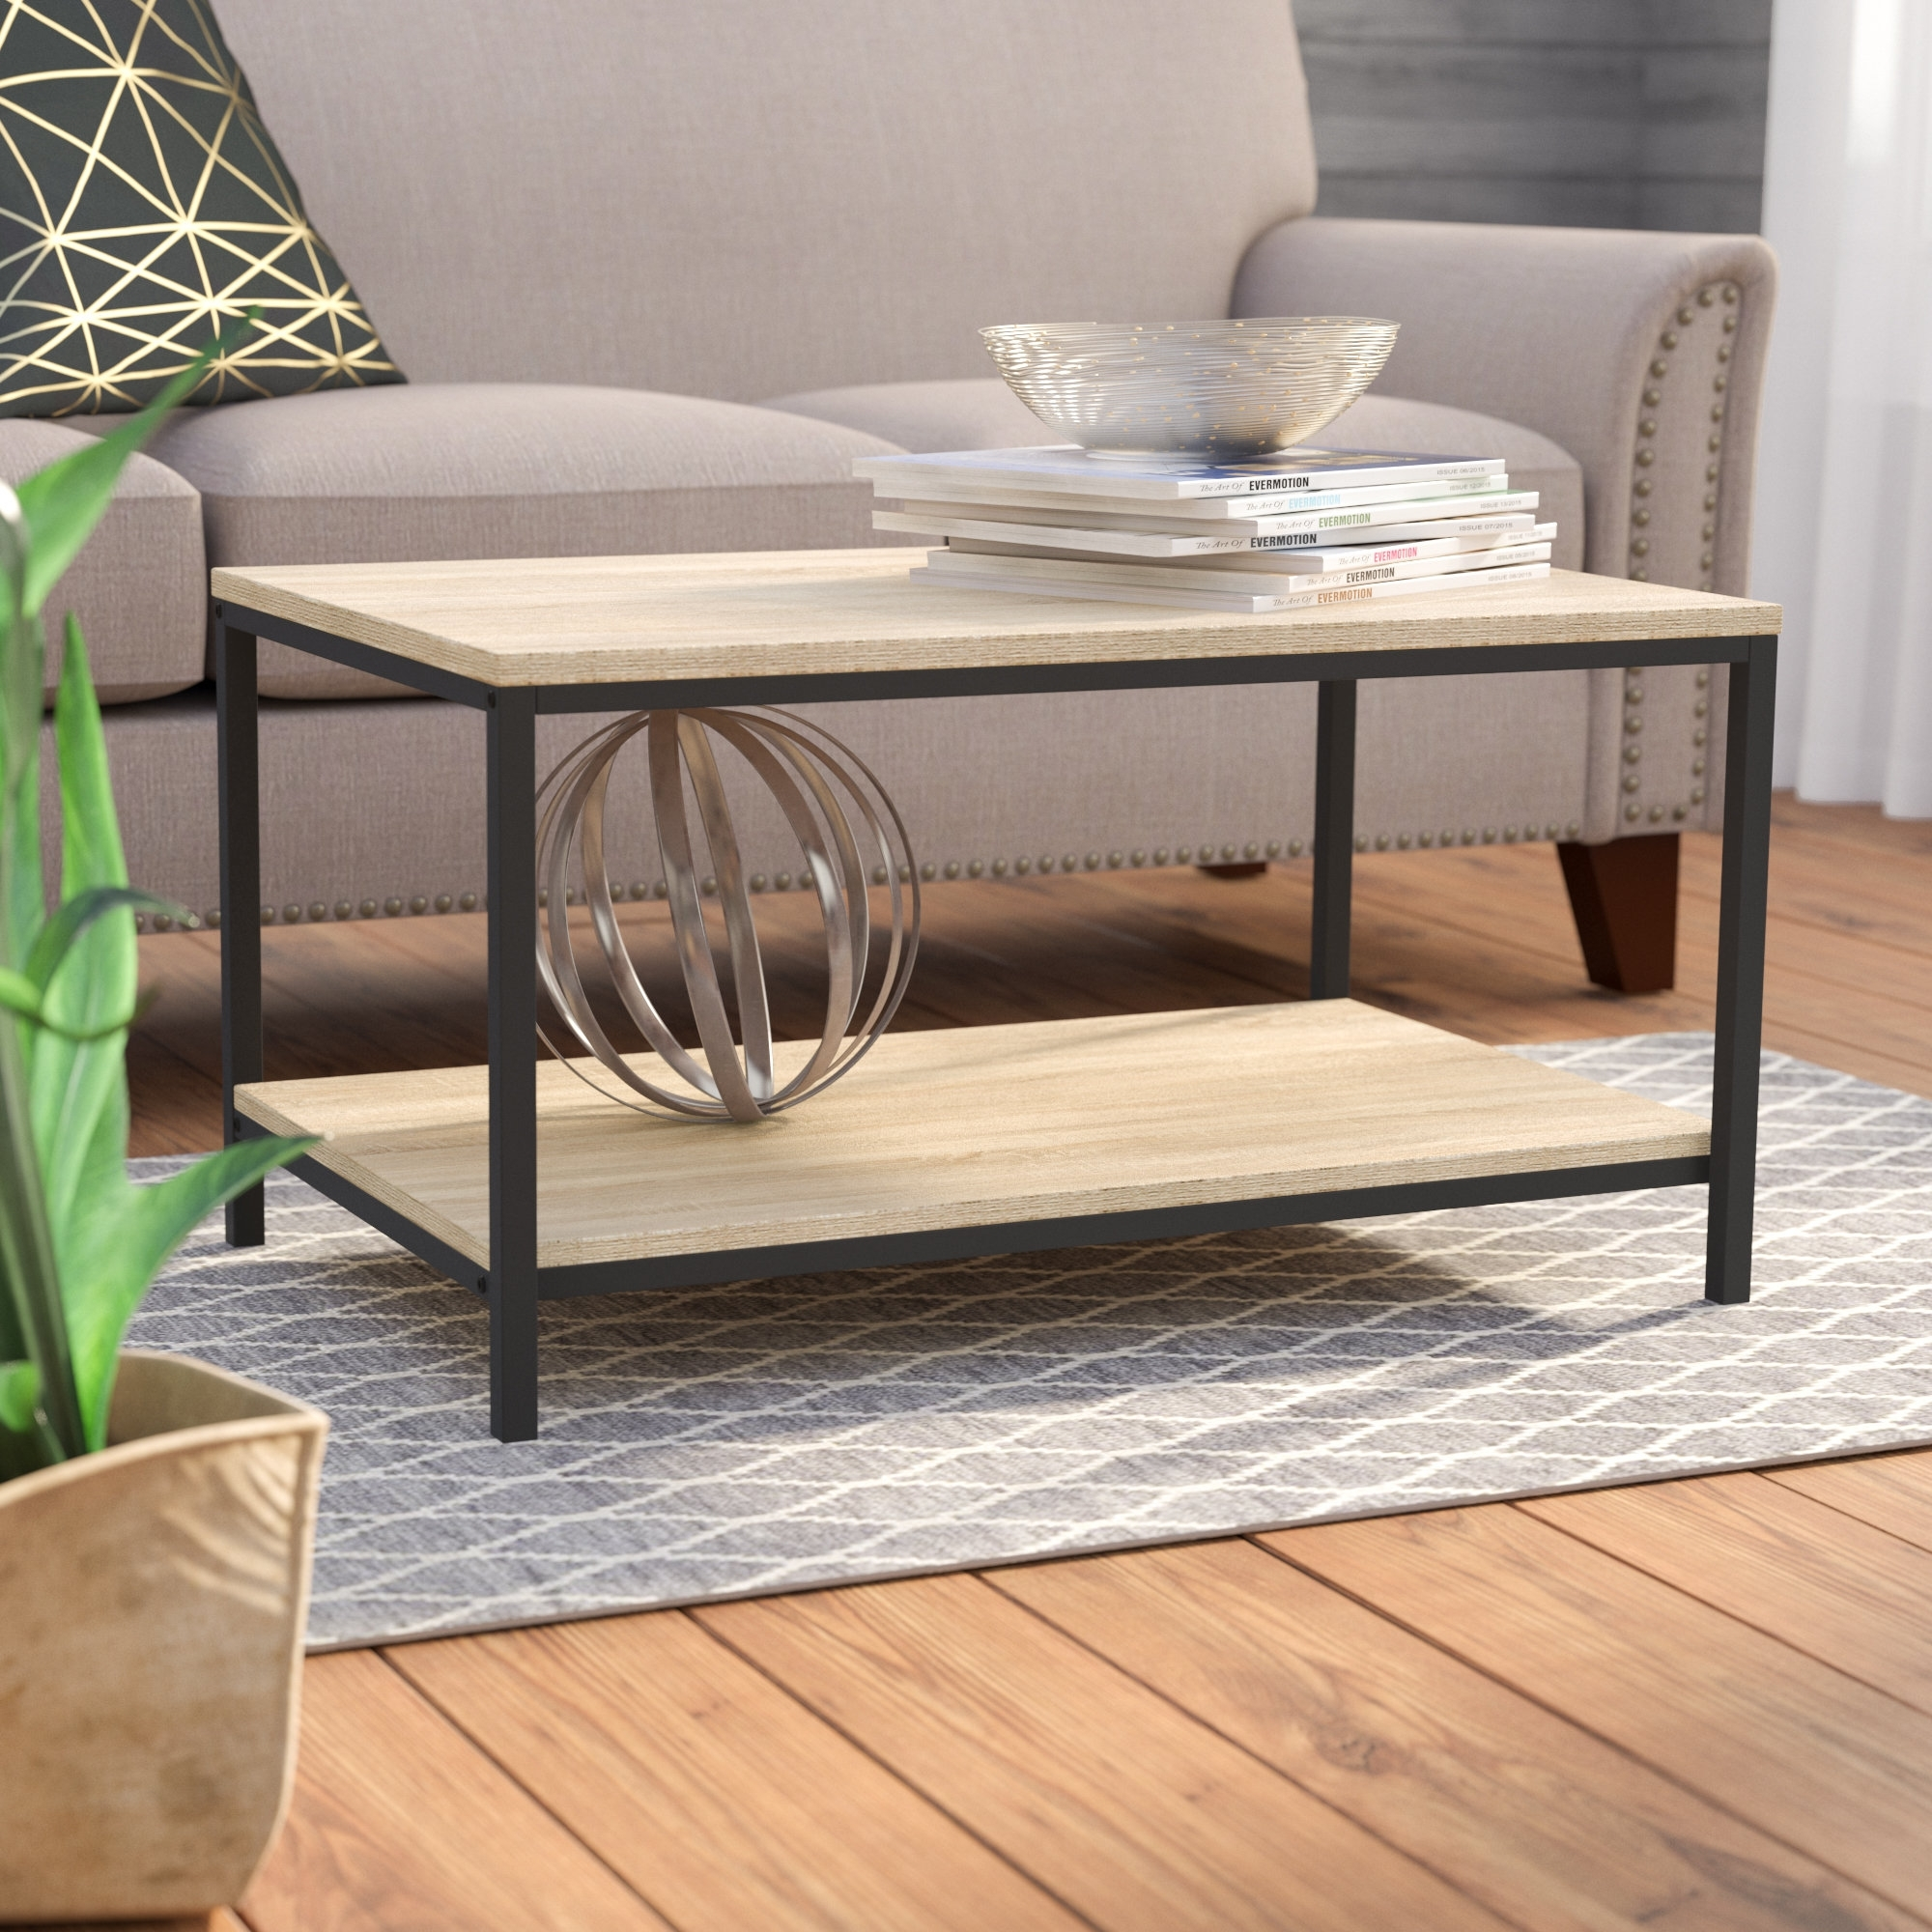 Laurel Foundry Modern Farmhouse Ermont Coffee Table & Reviews | Wayfair With Large Scale Chinese Farmhouse Coffee Tables (View 9 of 30)